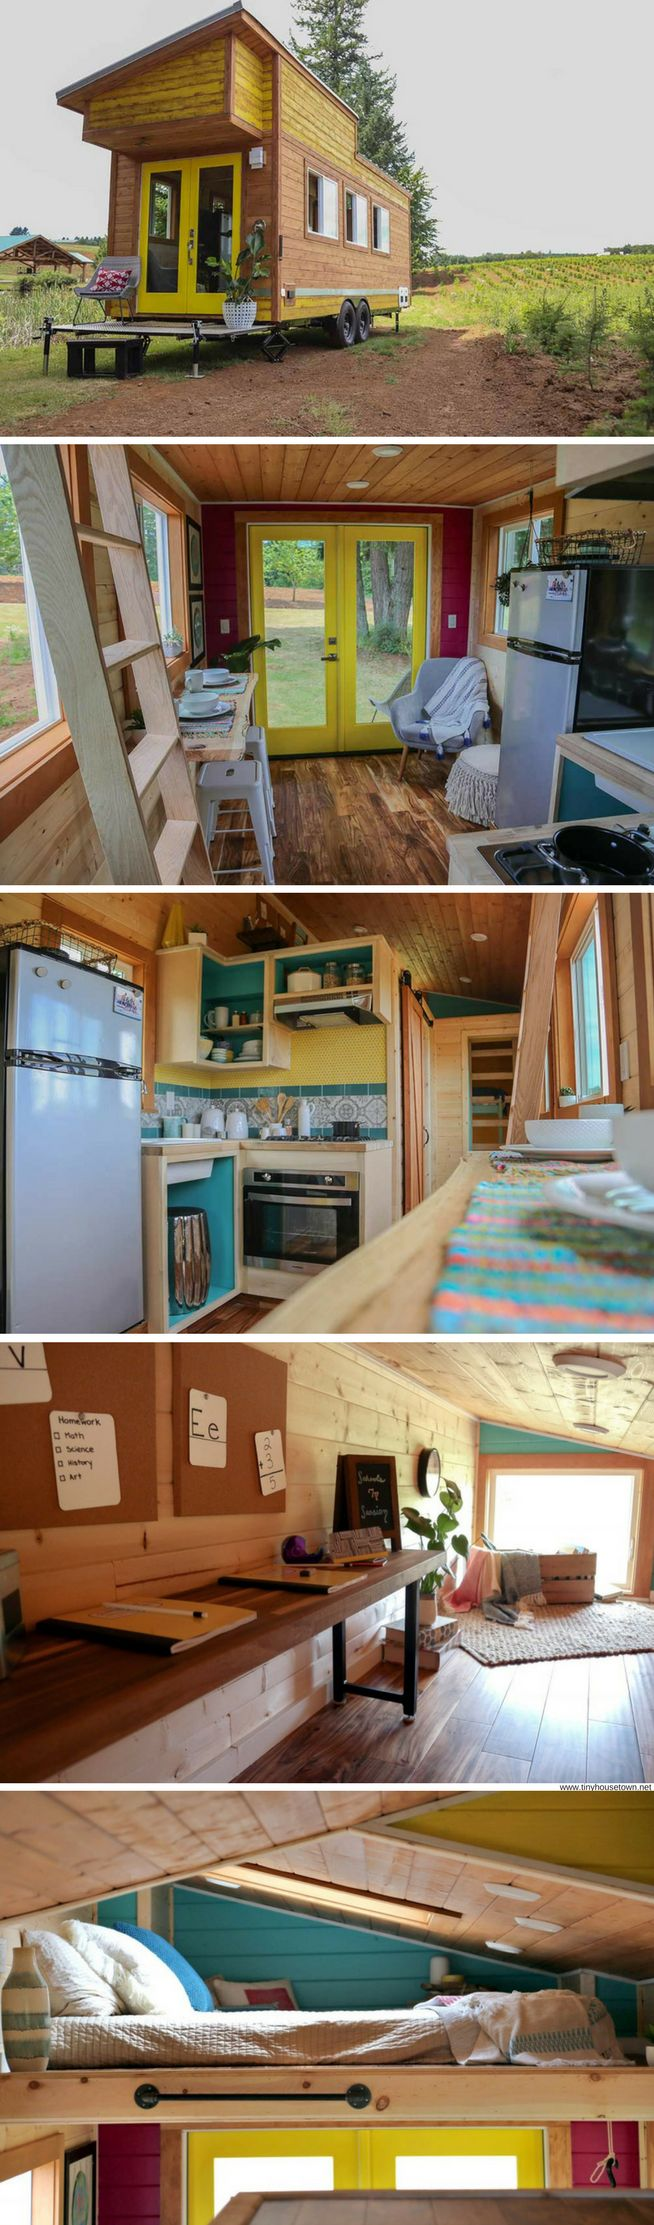 A bohemian beach-style tiny house witha schoolroom for the family's two small children